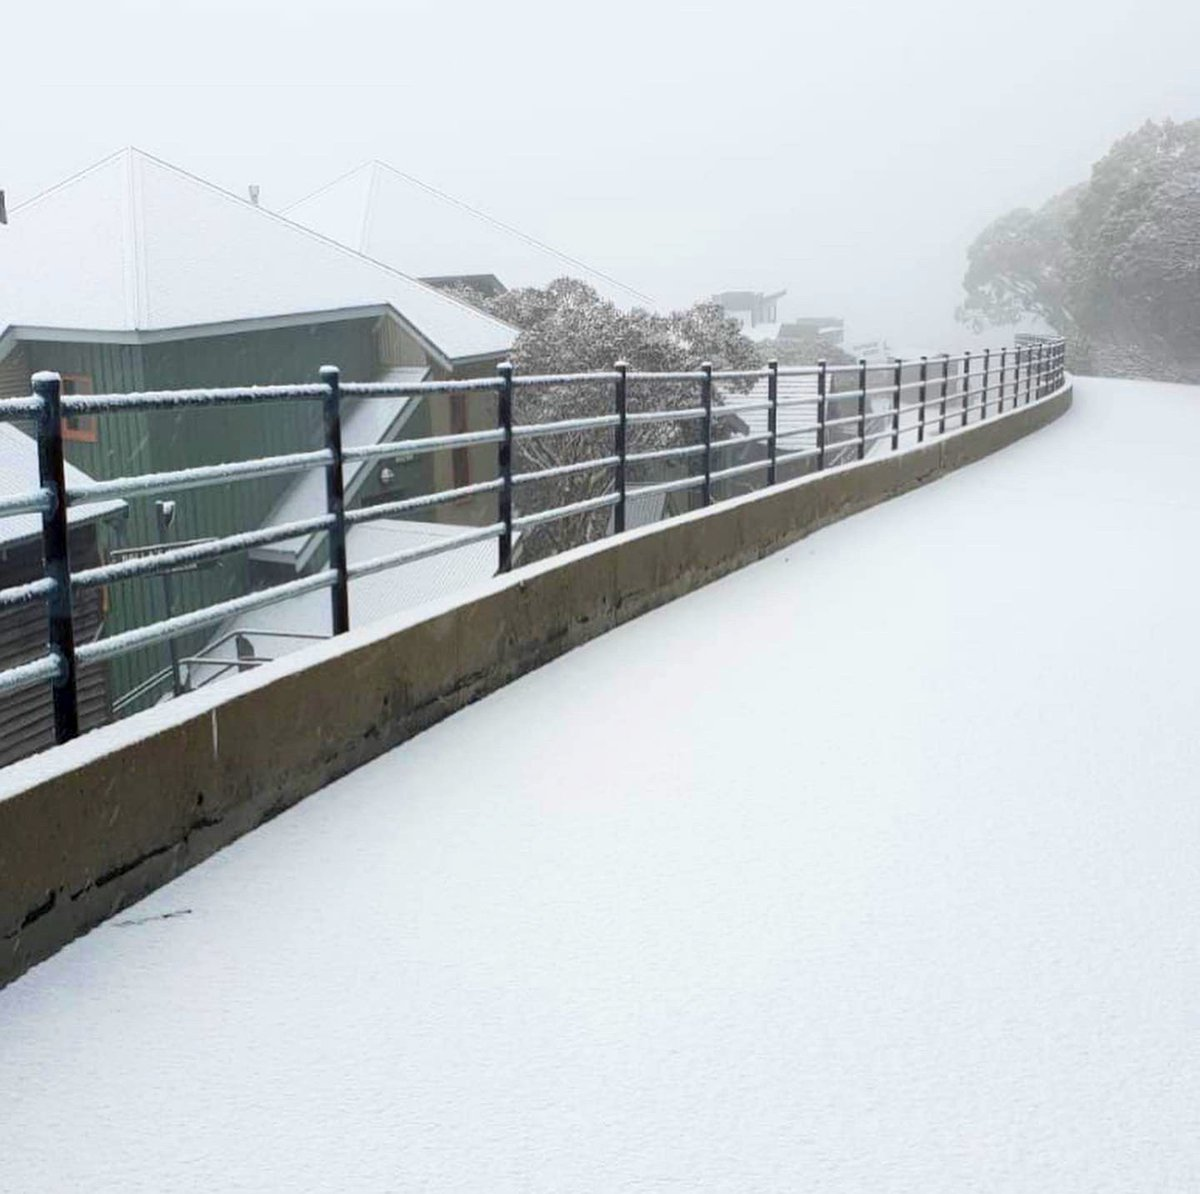 The #snow has returned to #Hotham today. That's the 3rd #snowfall event this month. Bring it! pic.twitter.com/kzOw8BCypO